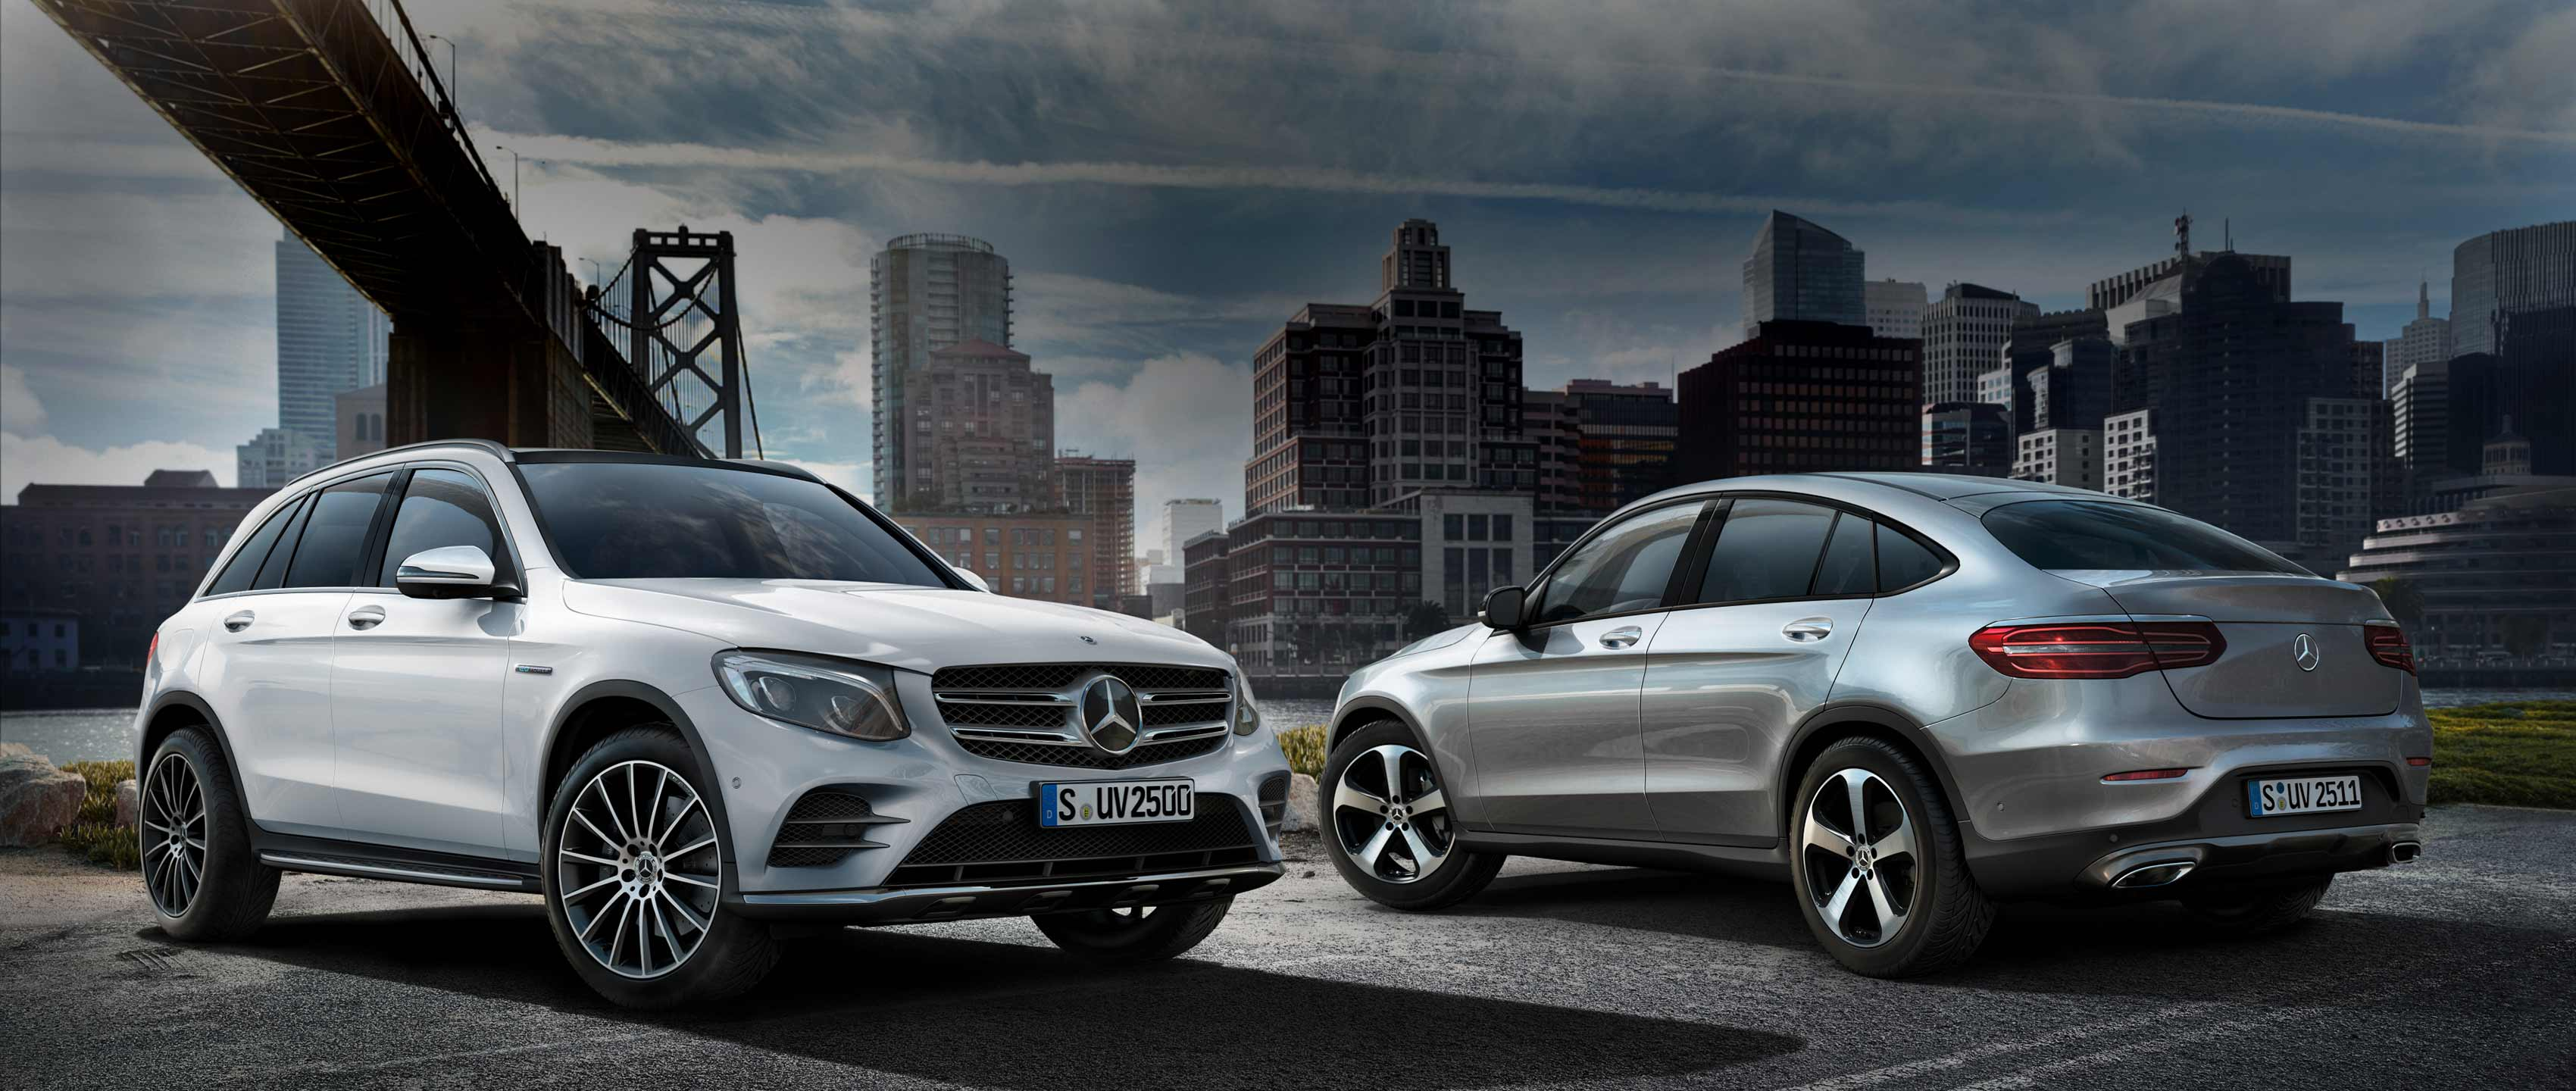 52 The Best Mercedes Glc Wallpaper